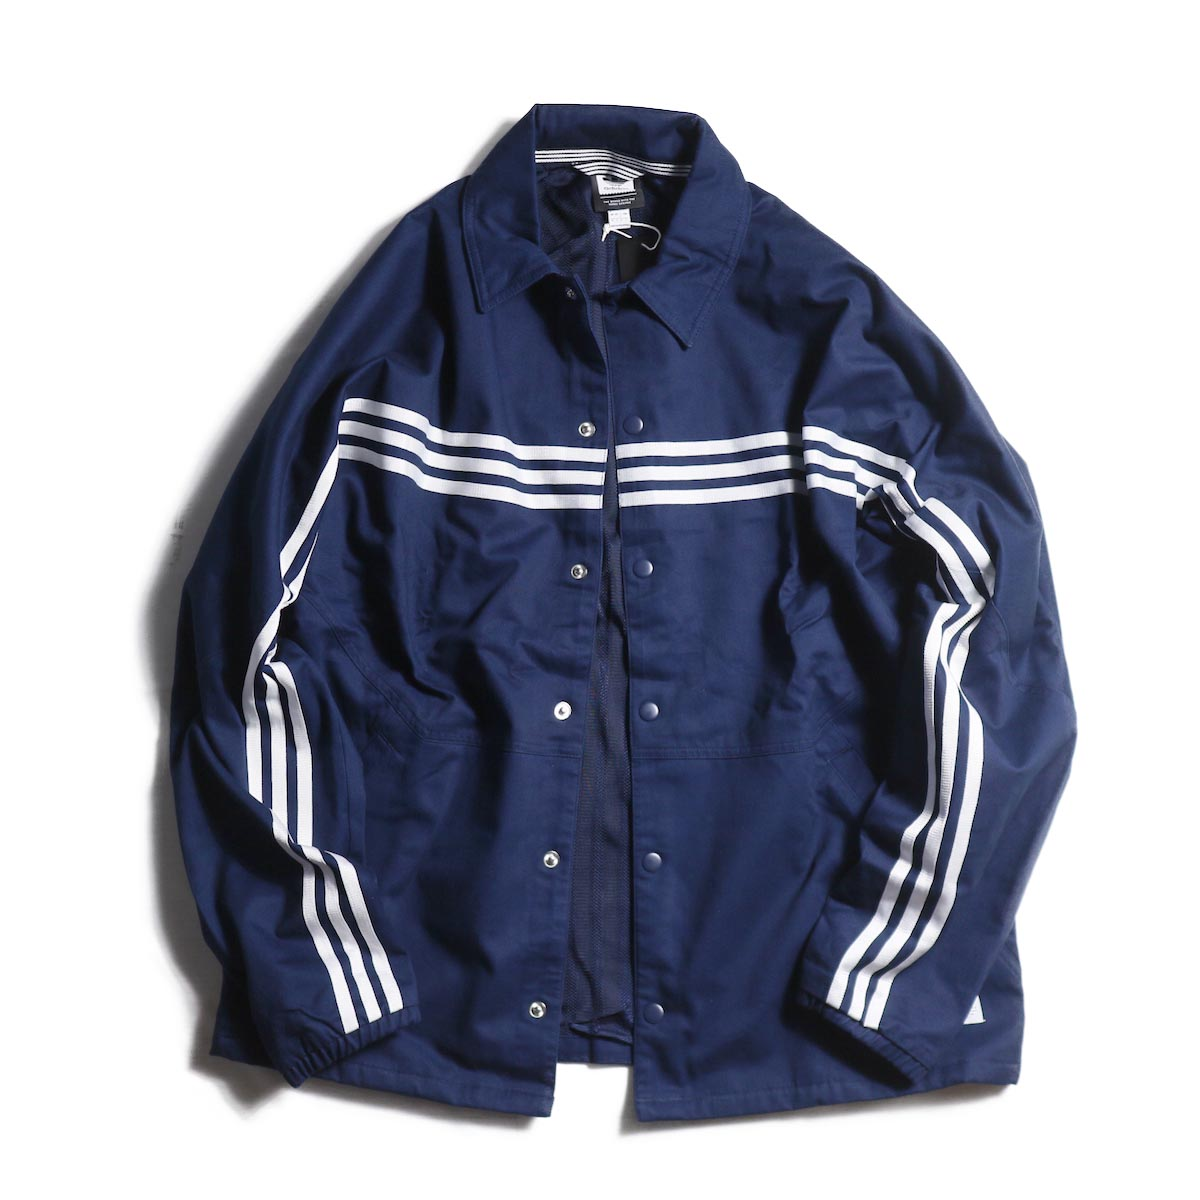 adidas originals / SCHLEPP JACKET